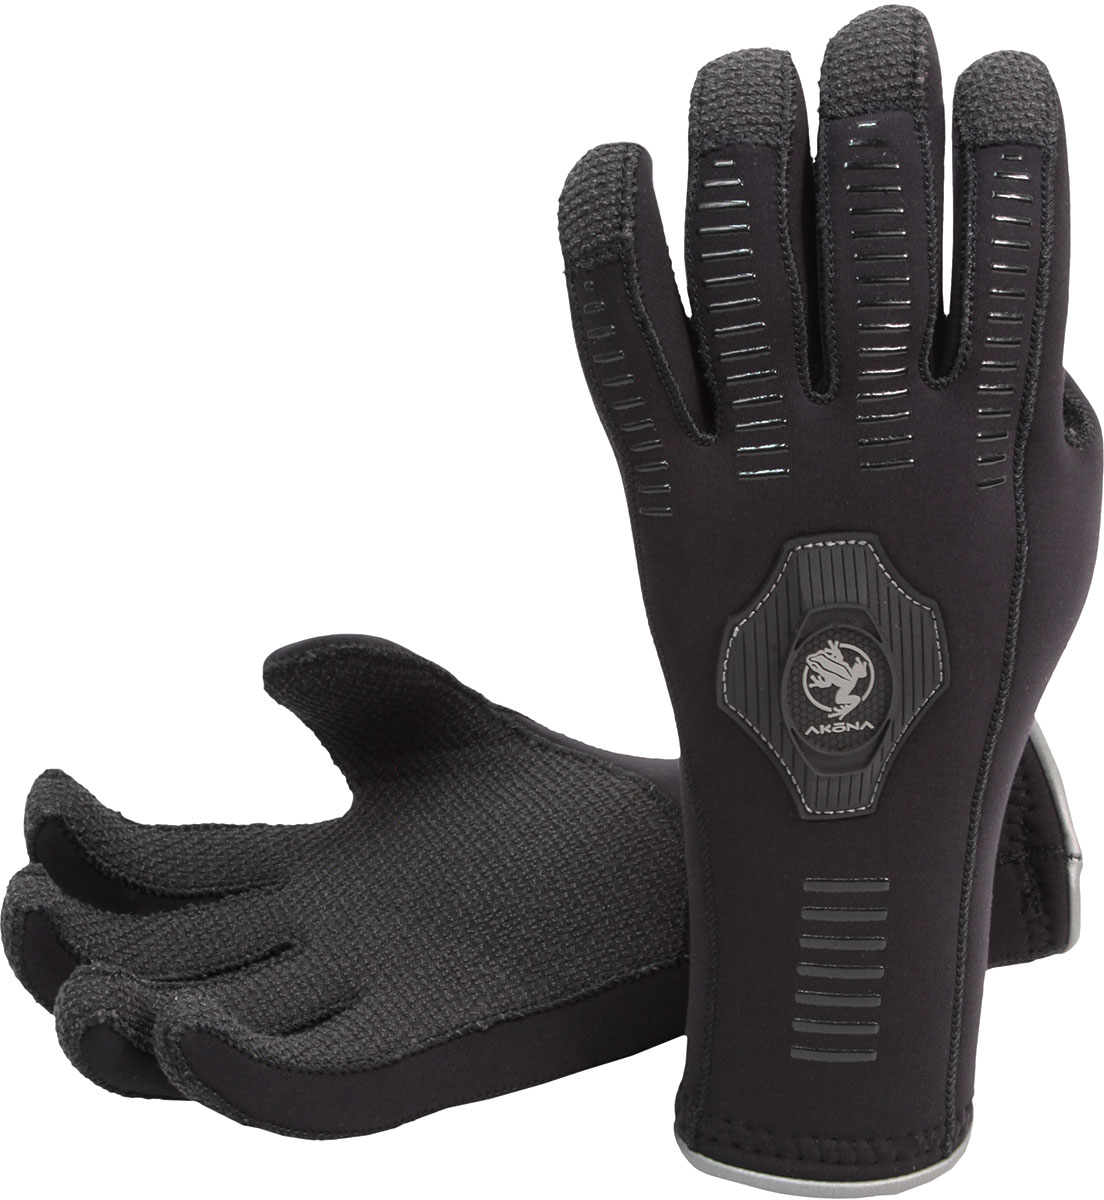 Akona 5mm ArmorTex Dive Glove